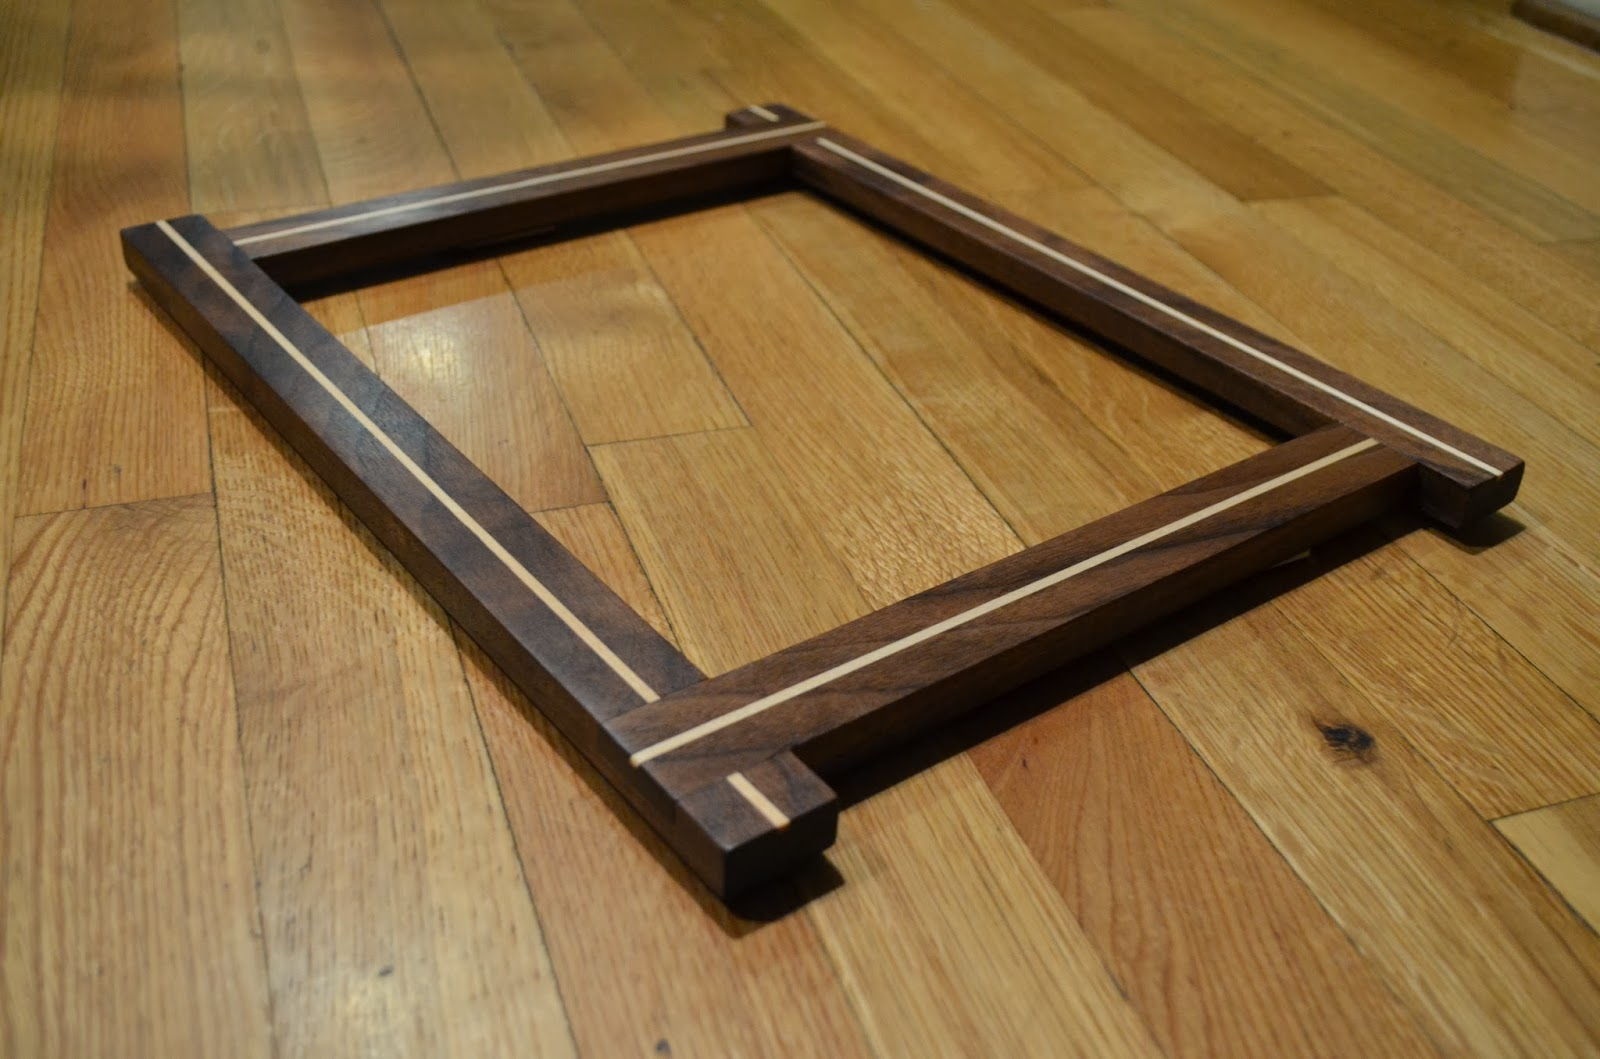 Picture frames vaughan woodworks i made two picture frames out of reclaimed california redwood which i found in a dumpster at a construction site they were fence posts before they were jeuxipadfo Image collections